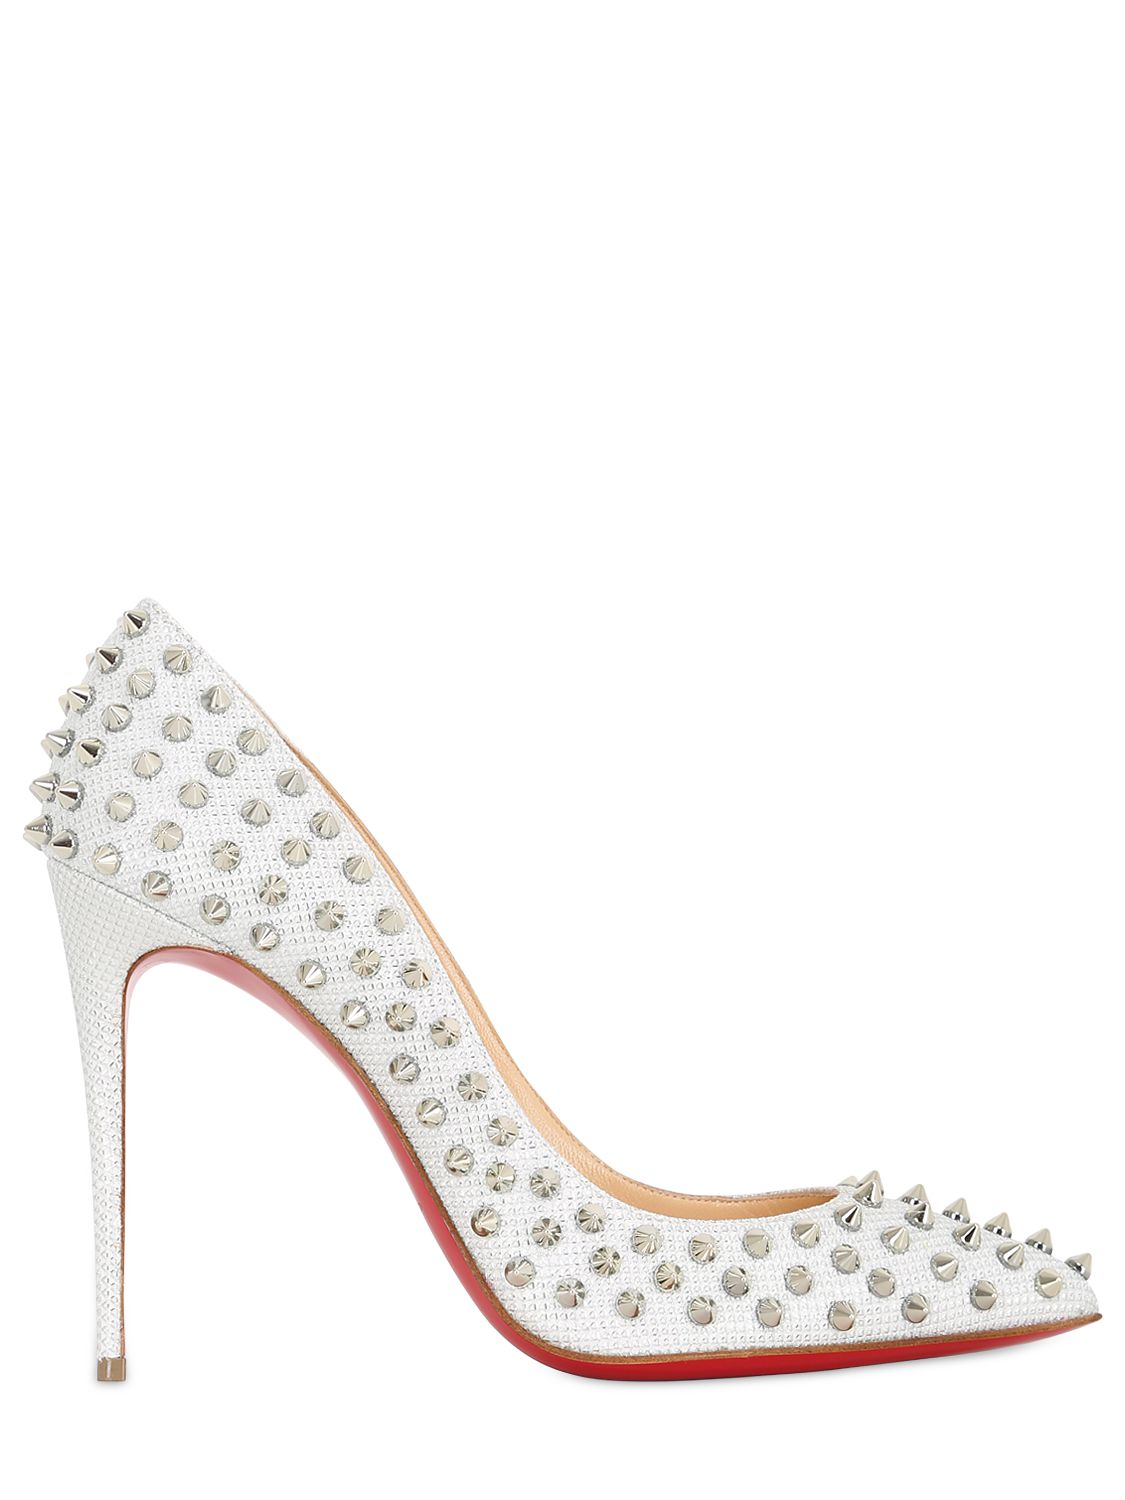 2a193259b14e Gallery. Previously sold at  LUISA VIA ROMA · Women s Christian Louboutin  Spike